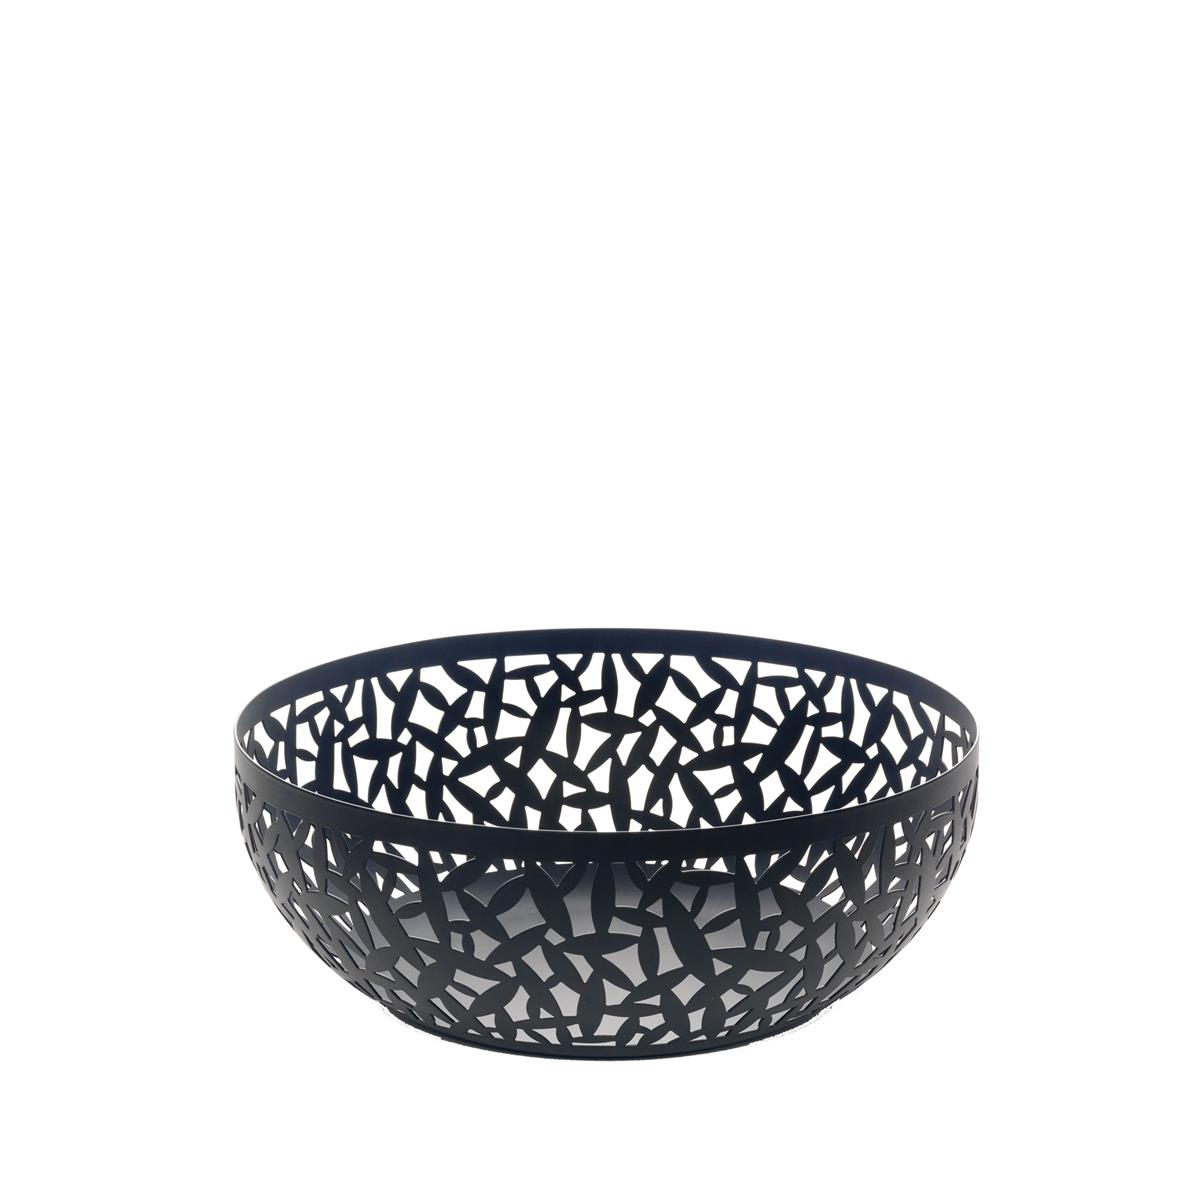 Alessi-CACTUS! Perforated fruit bowl in colored steel and resin, black-